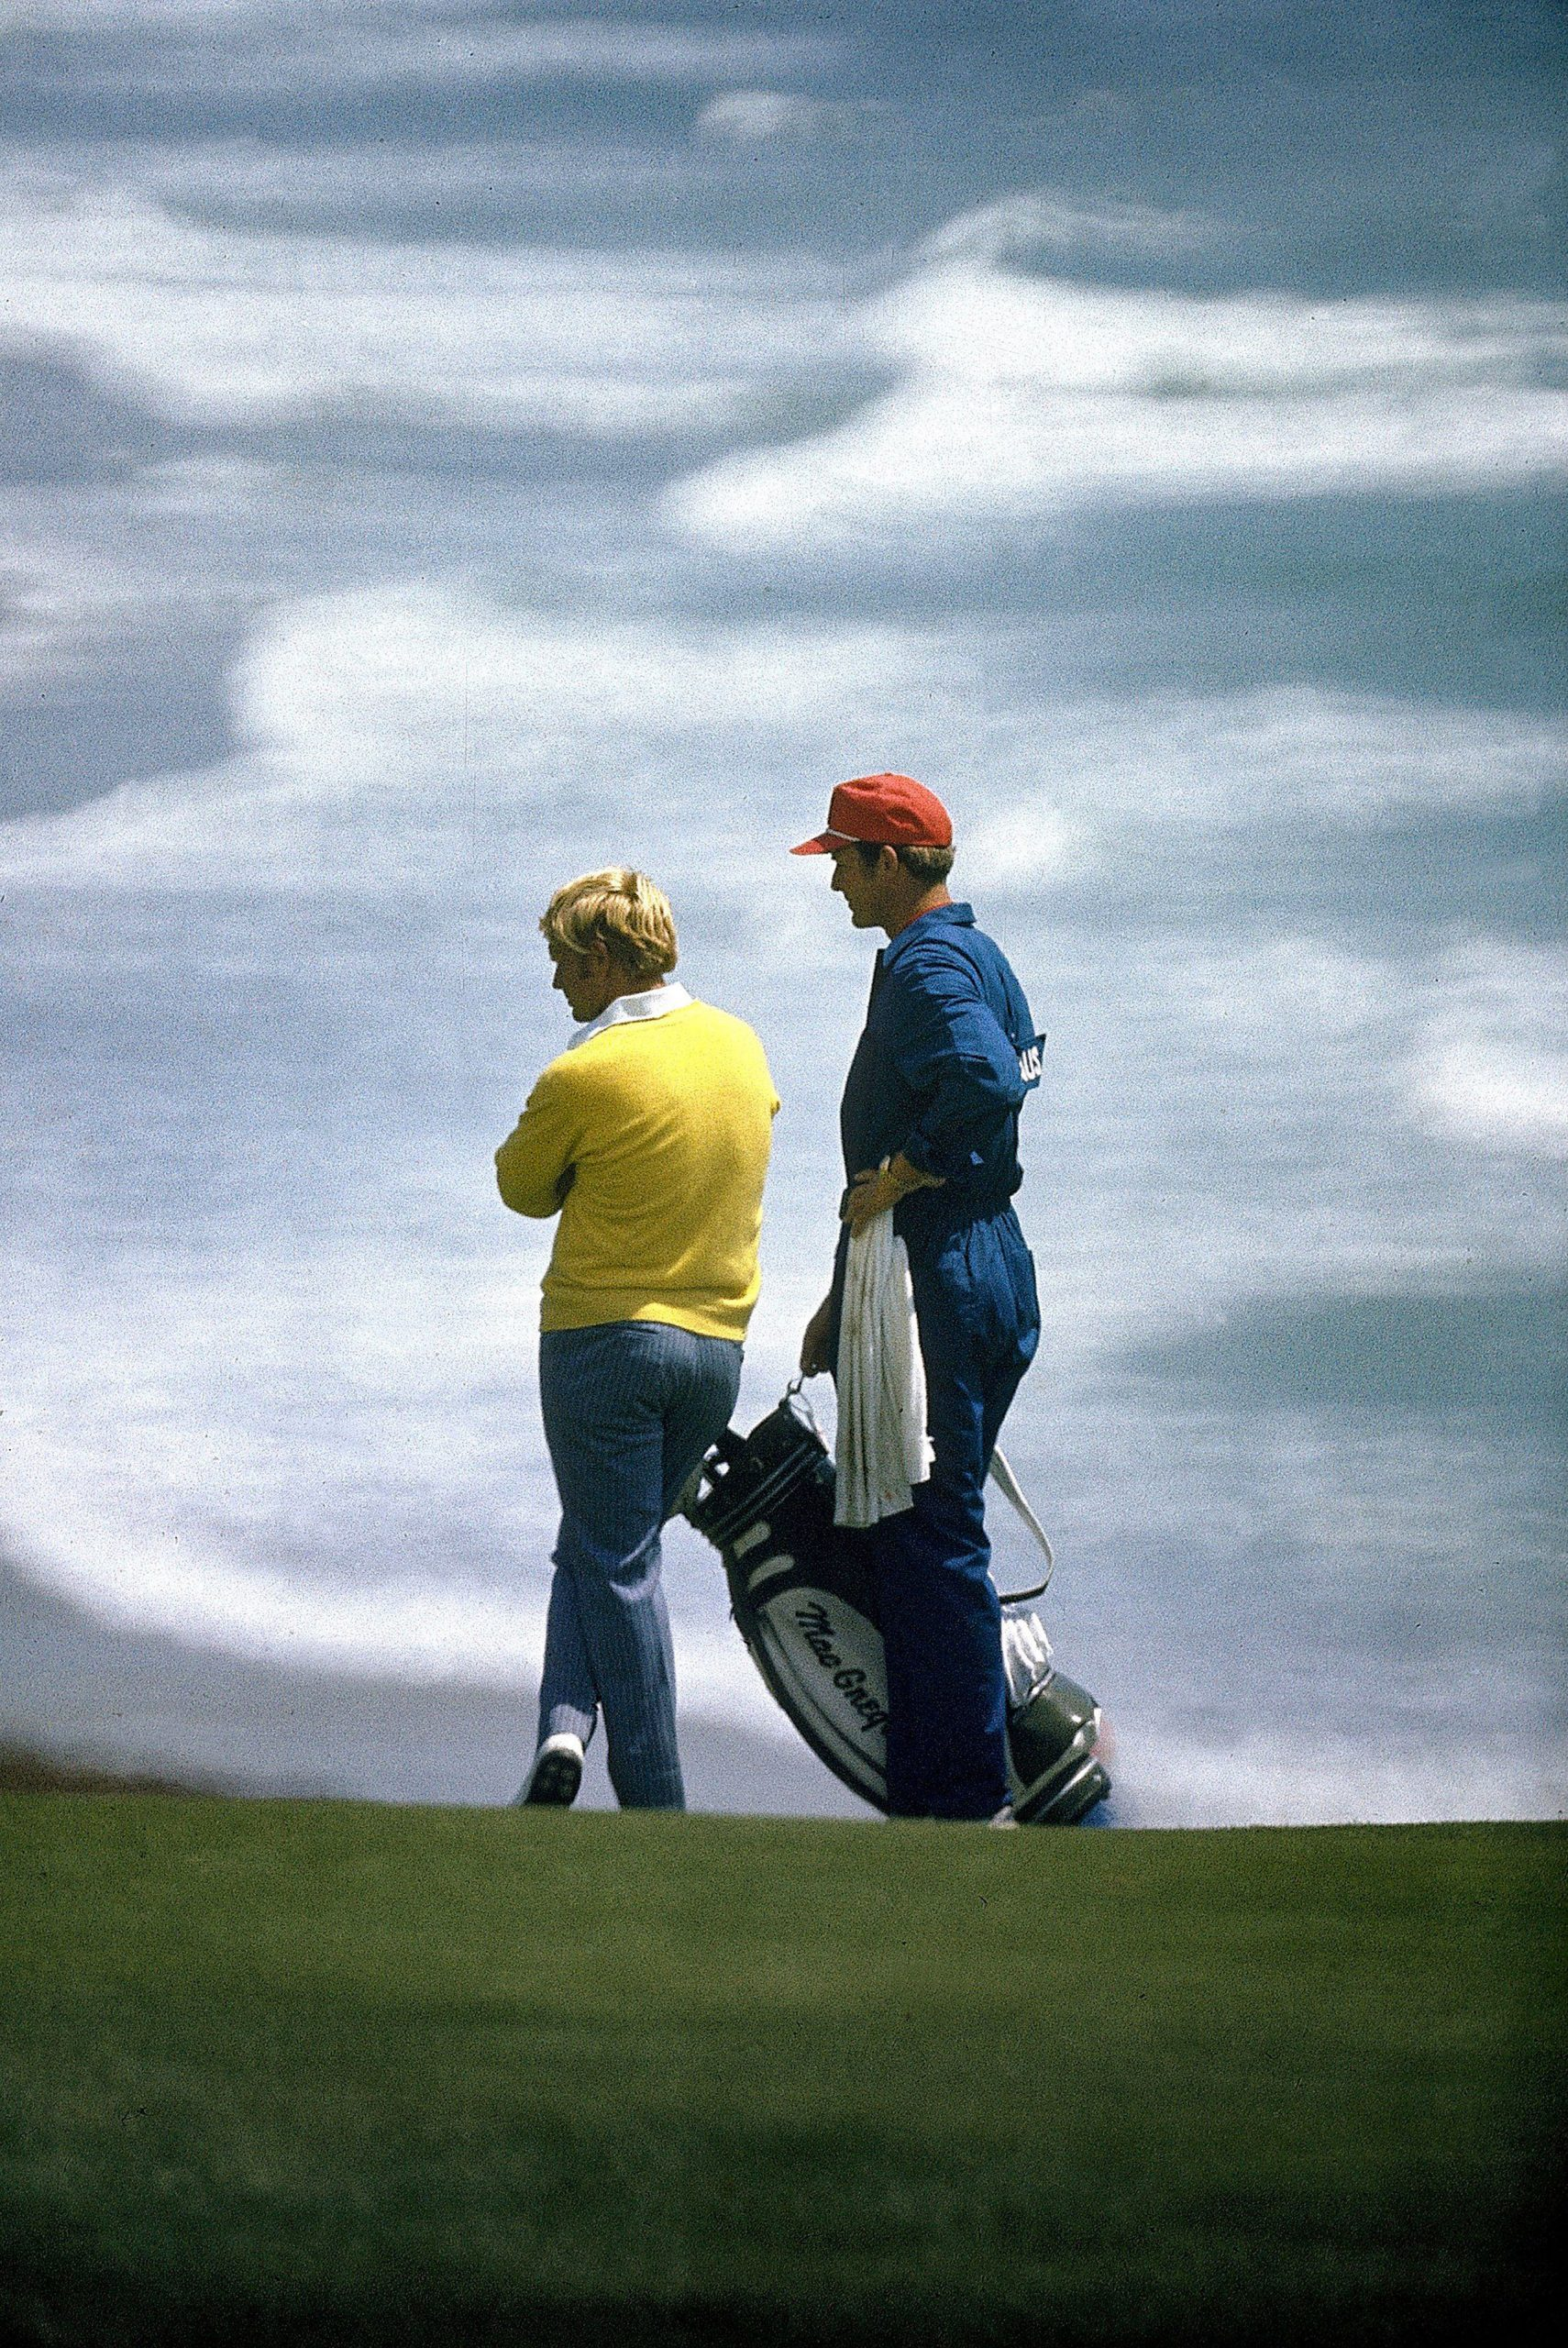 Nicklaus staring down the pin on Sunday in '72, moments before his unforgettable 1-iron. Photo by James Drake/Sports Illustrated/Getty Images